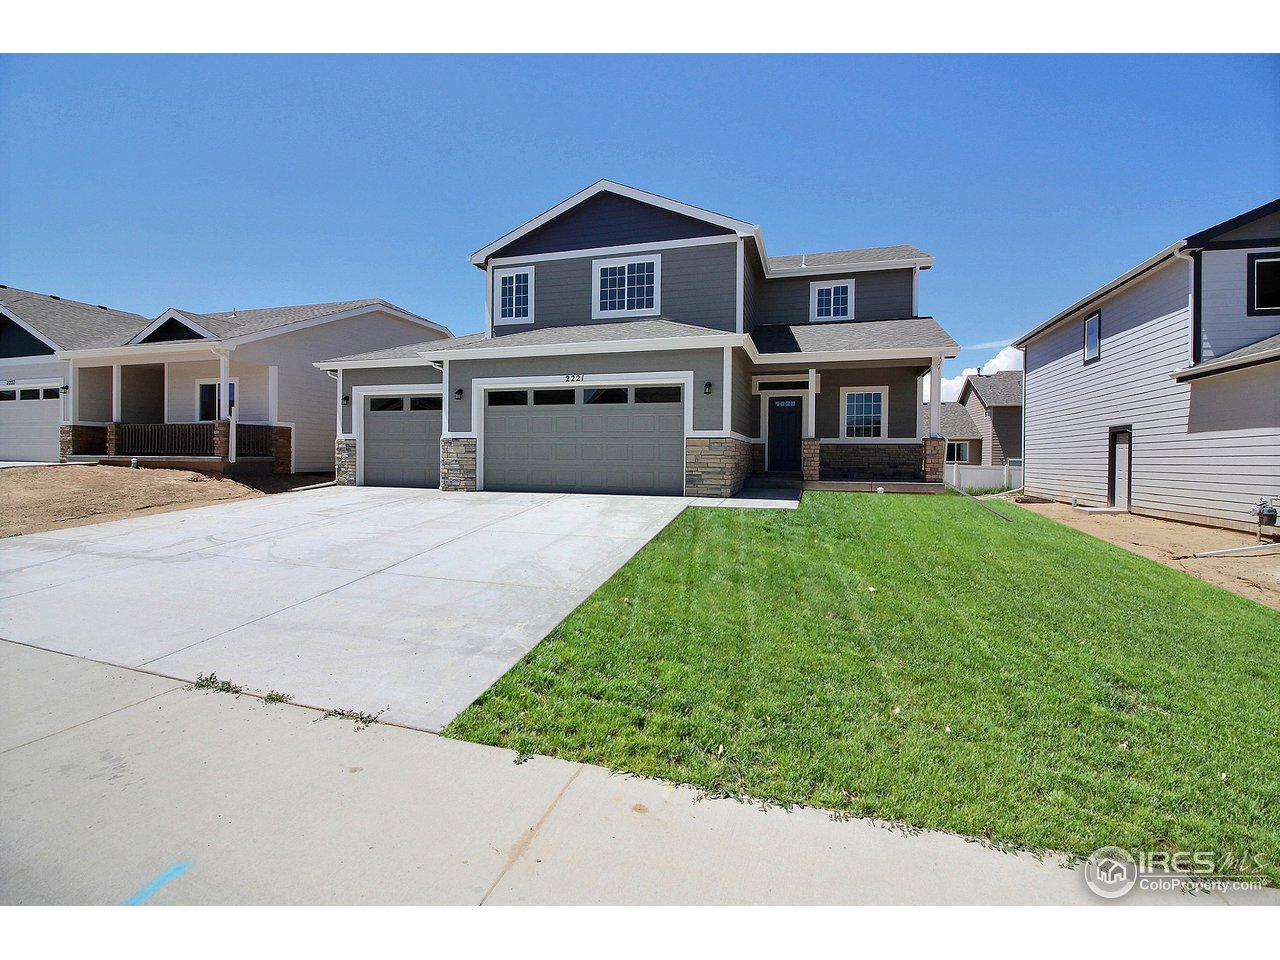 2221 73RD AVE PL, GREELEY, CO 80634